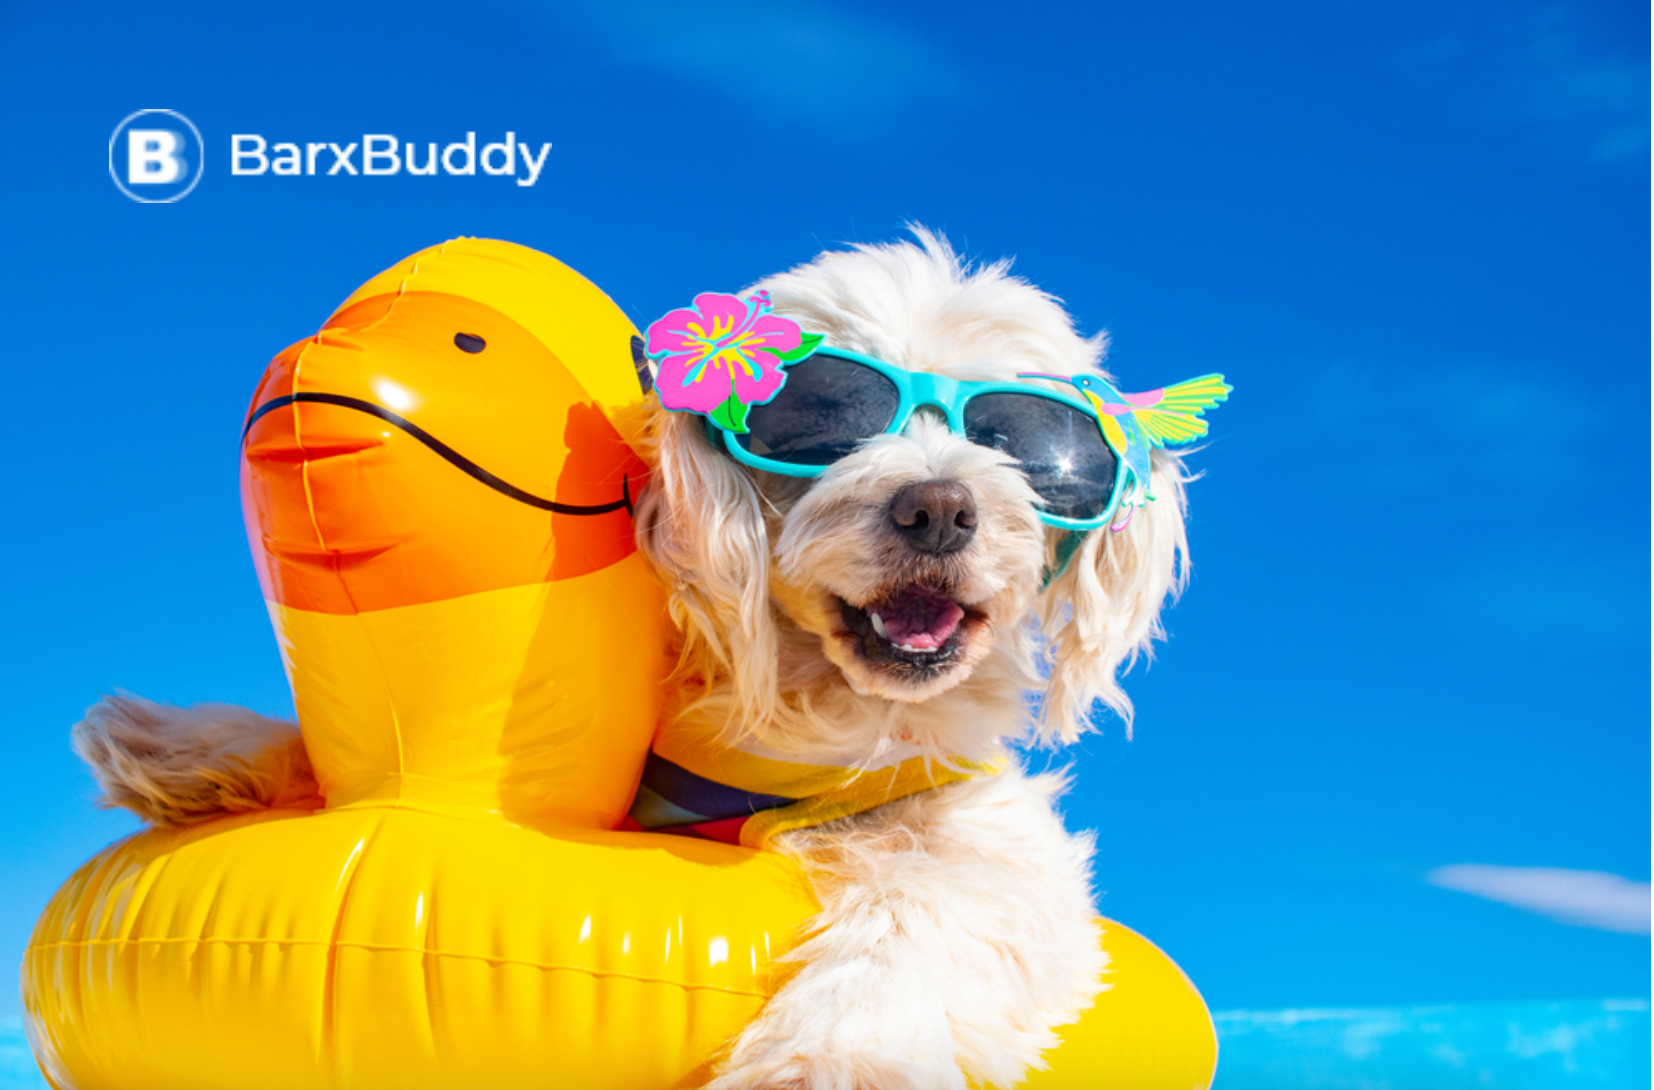 Vacation With Dogs: Why I Always Pack My BarxBuddy Busy Ball And BarxBuddy Silicone Dog Bowl